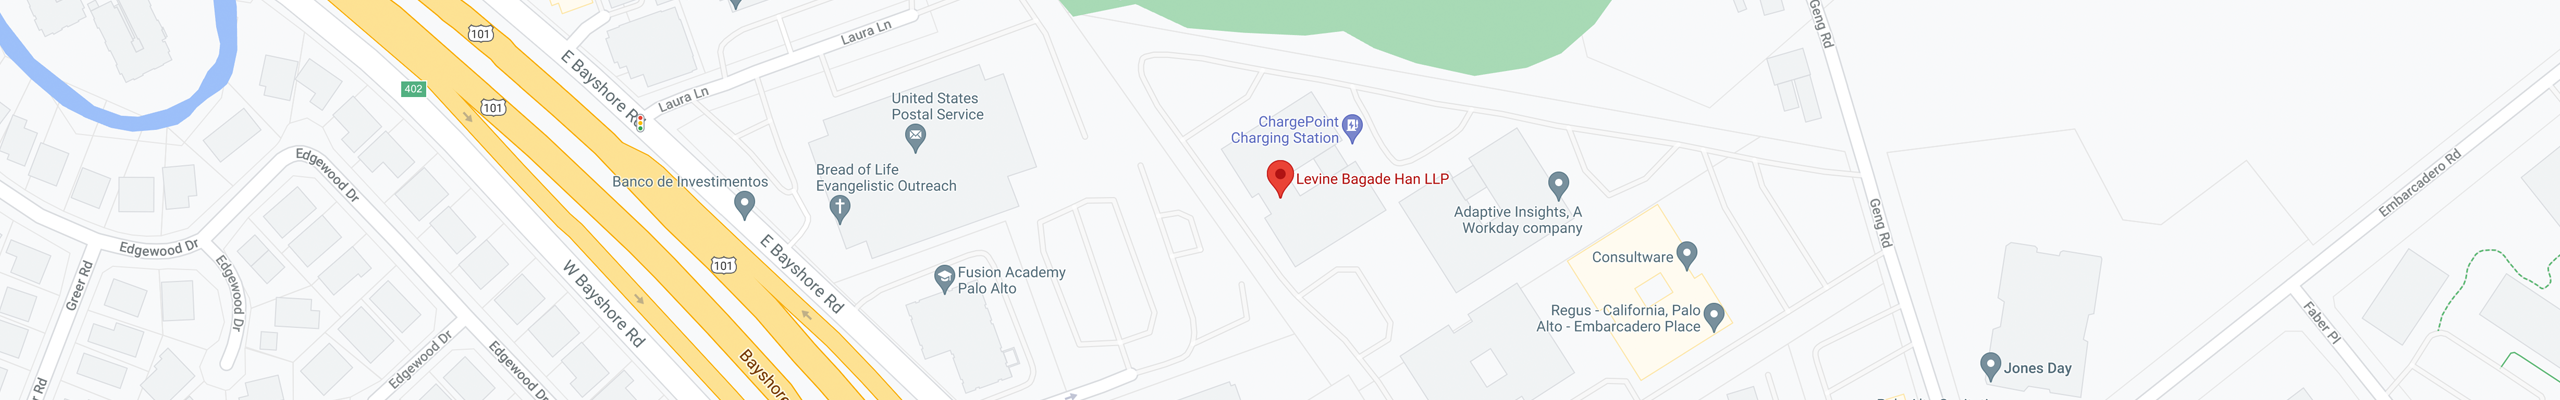 Levine Bagade Han on Google Maps - Link opens in new window